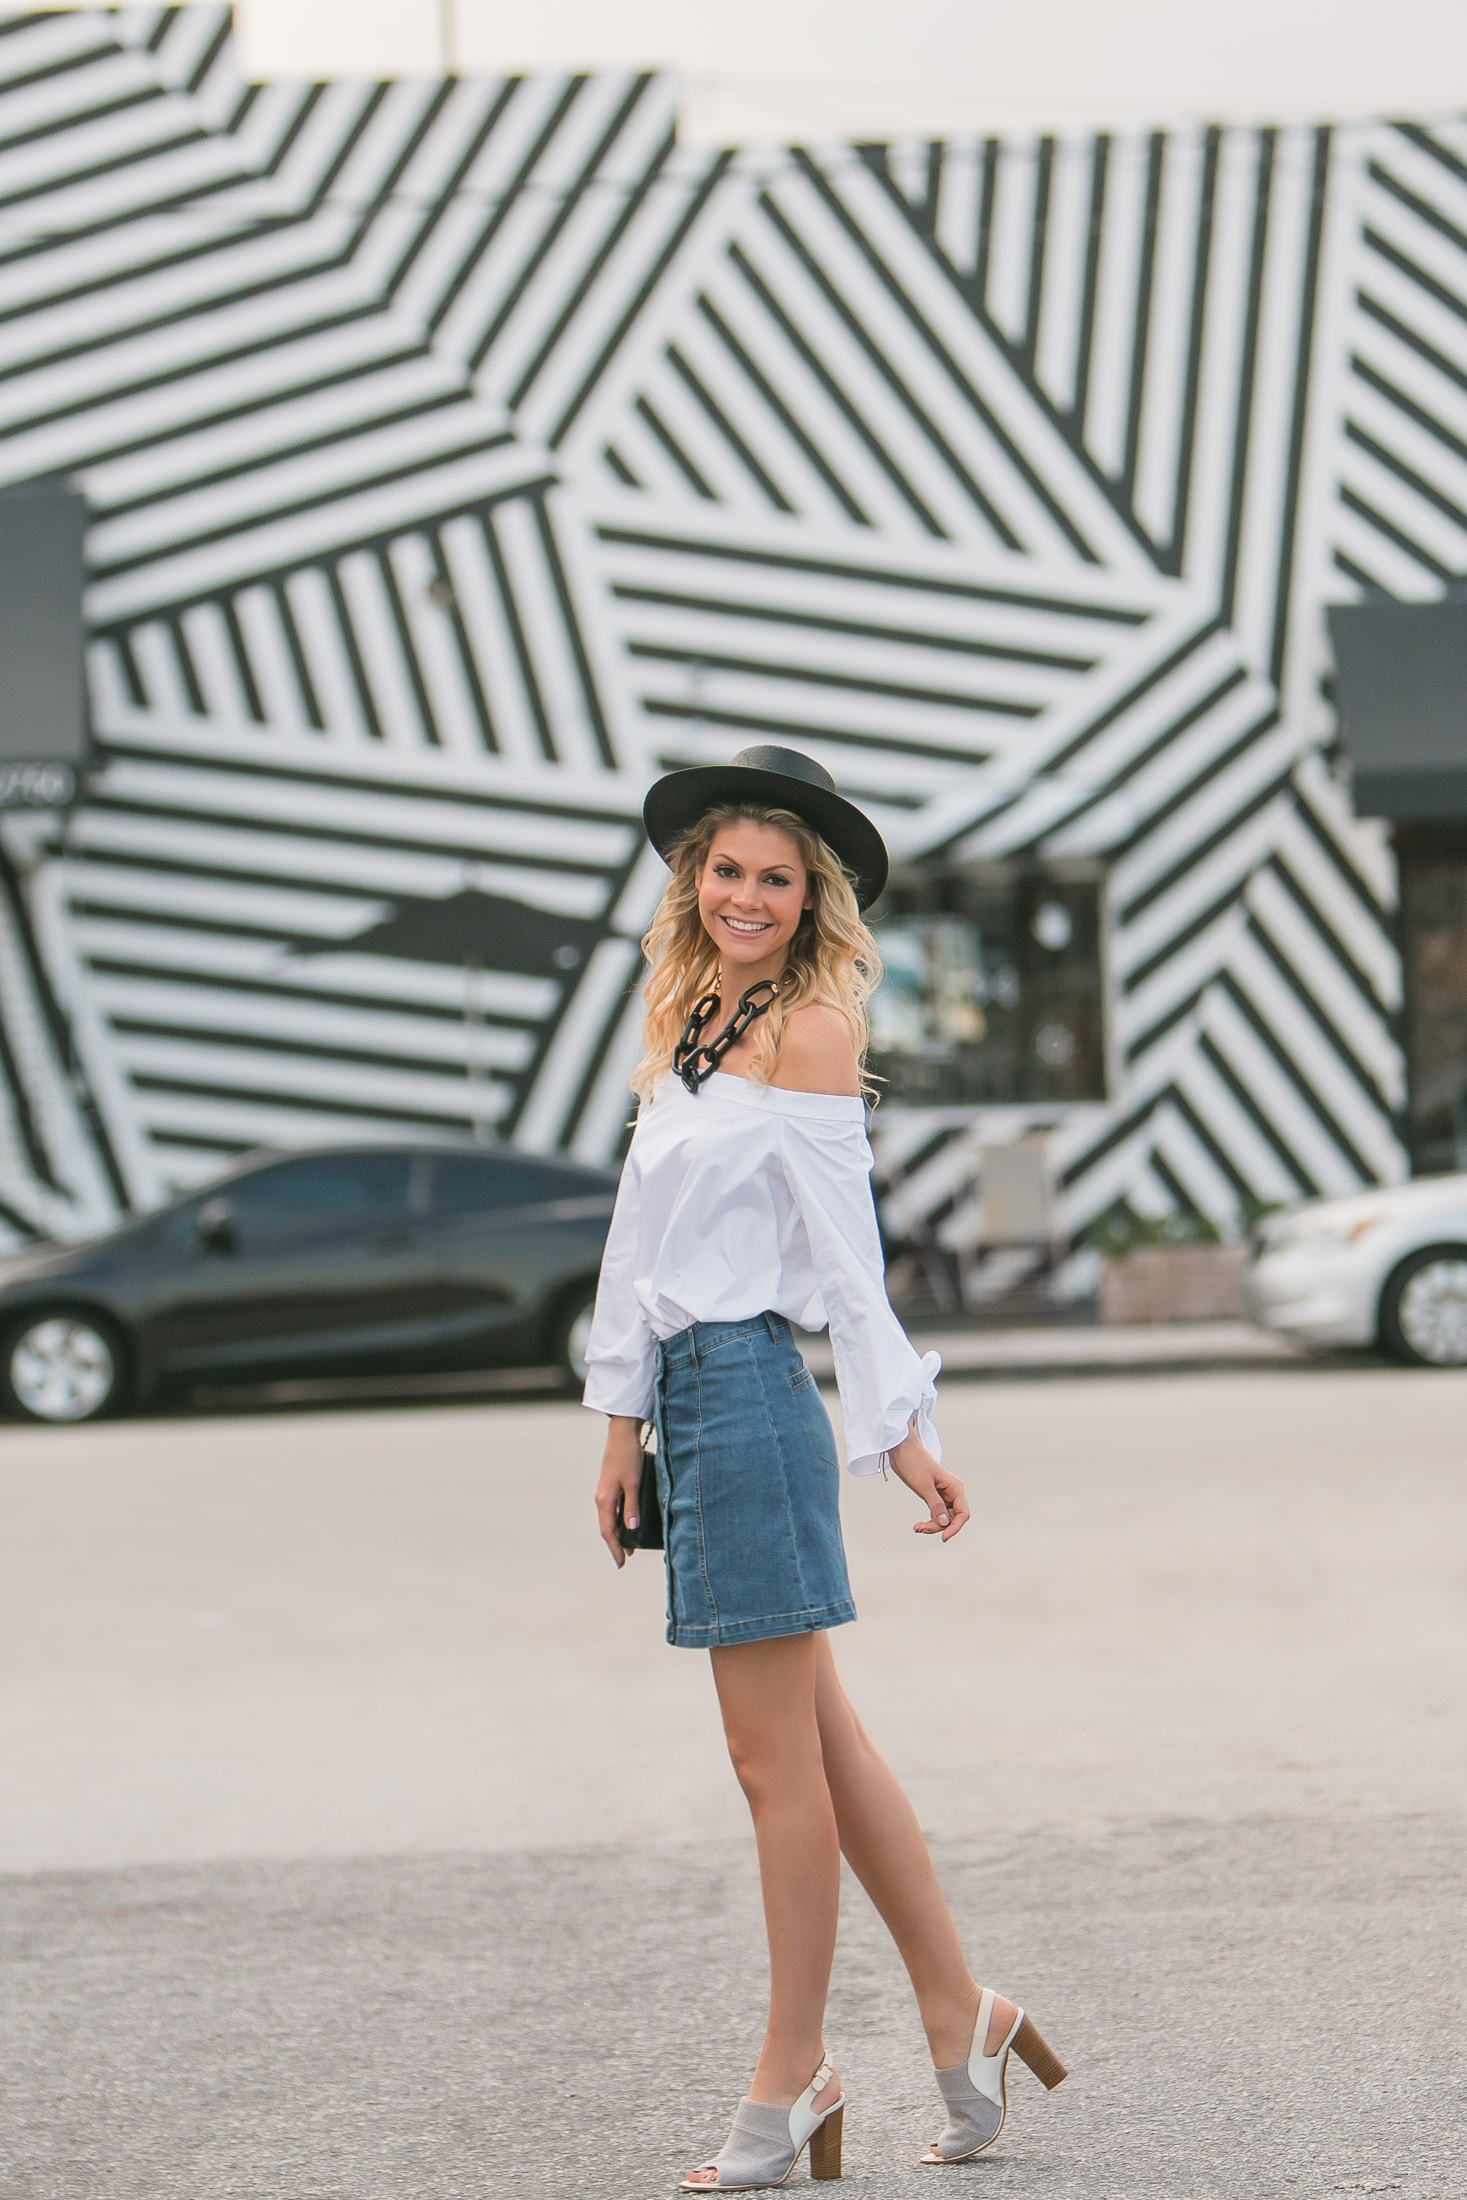 Kate-Beach-Wynwood-76.jpg